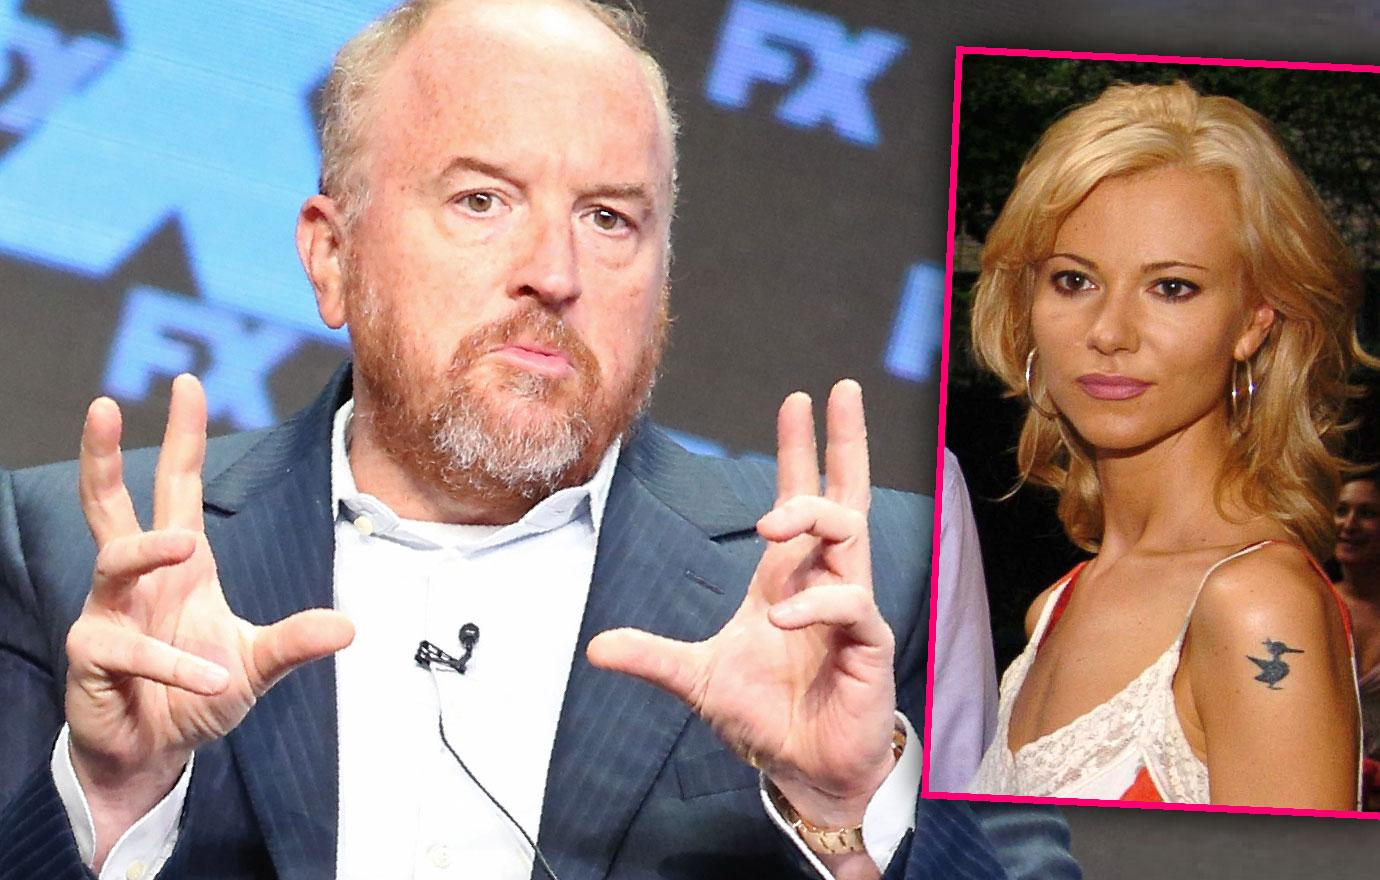 Emails Claim Louis C.K. May Have Given Sarma Melngailis An STD